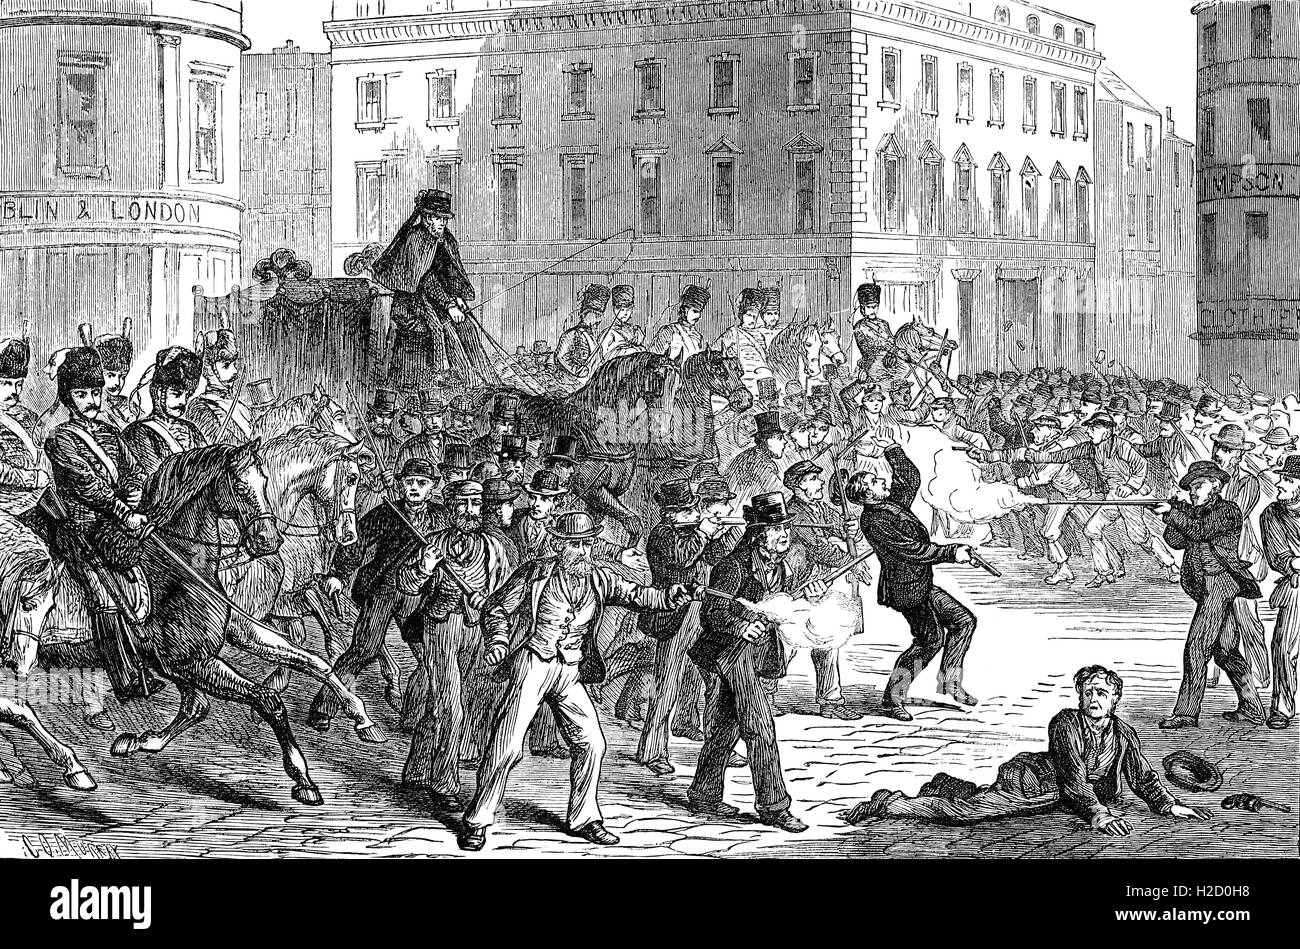 Following the Home Rule Bill's defeat, violence flared up again after the July 12th Orange parades provocatively - Stock Image